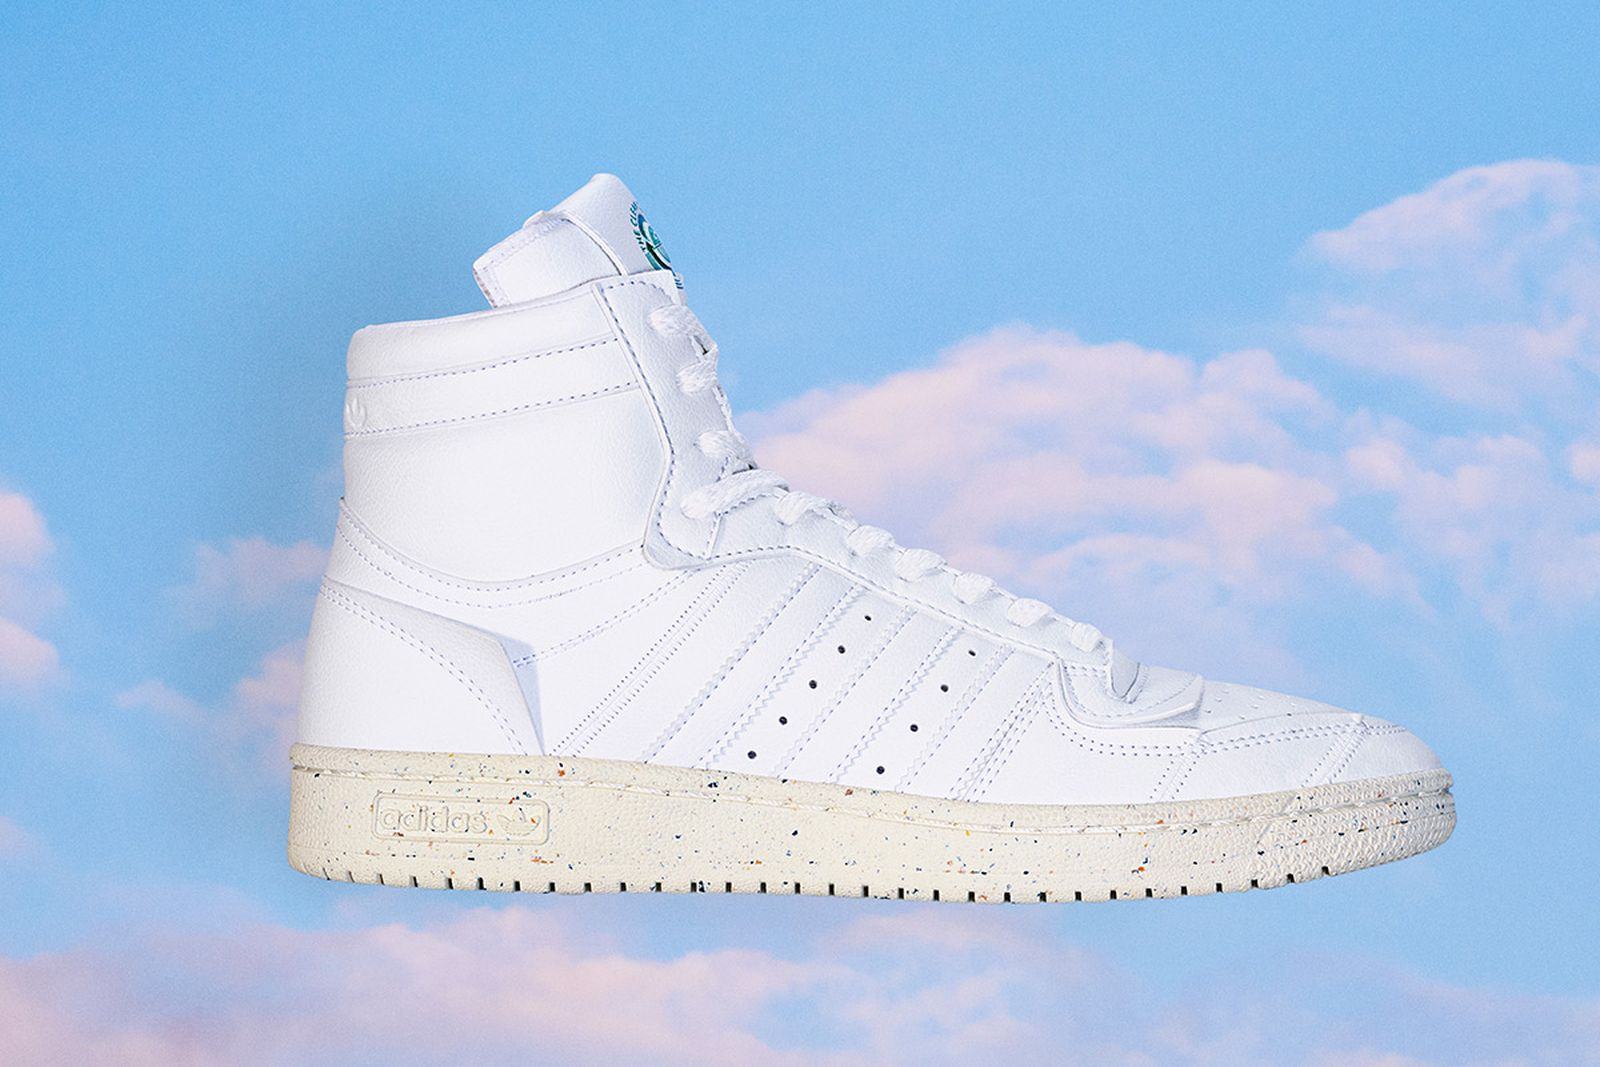 adidas originals save the planet fashion collection